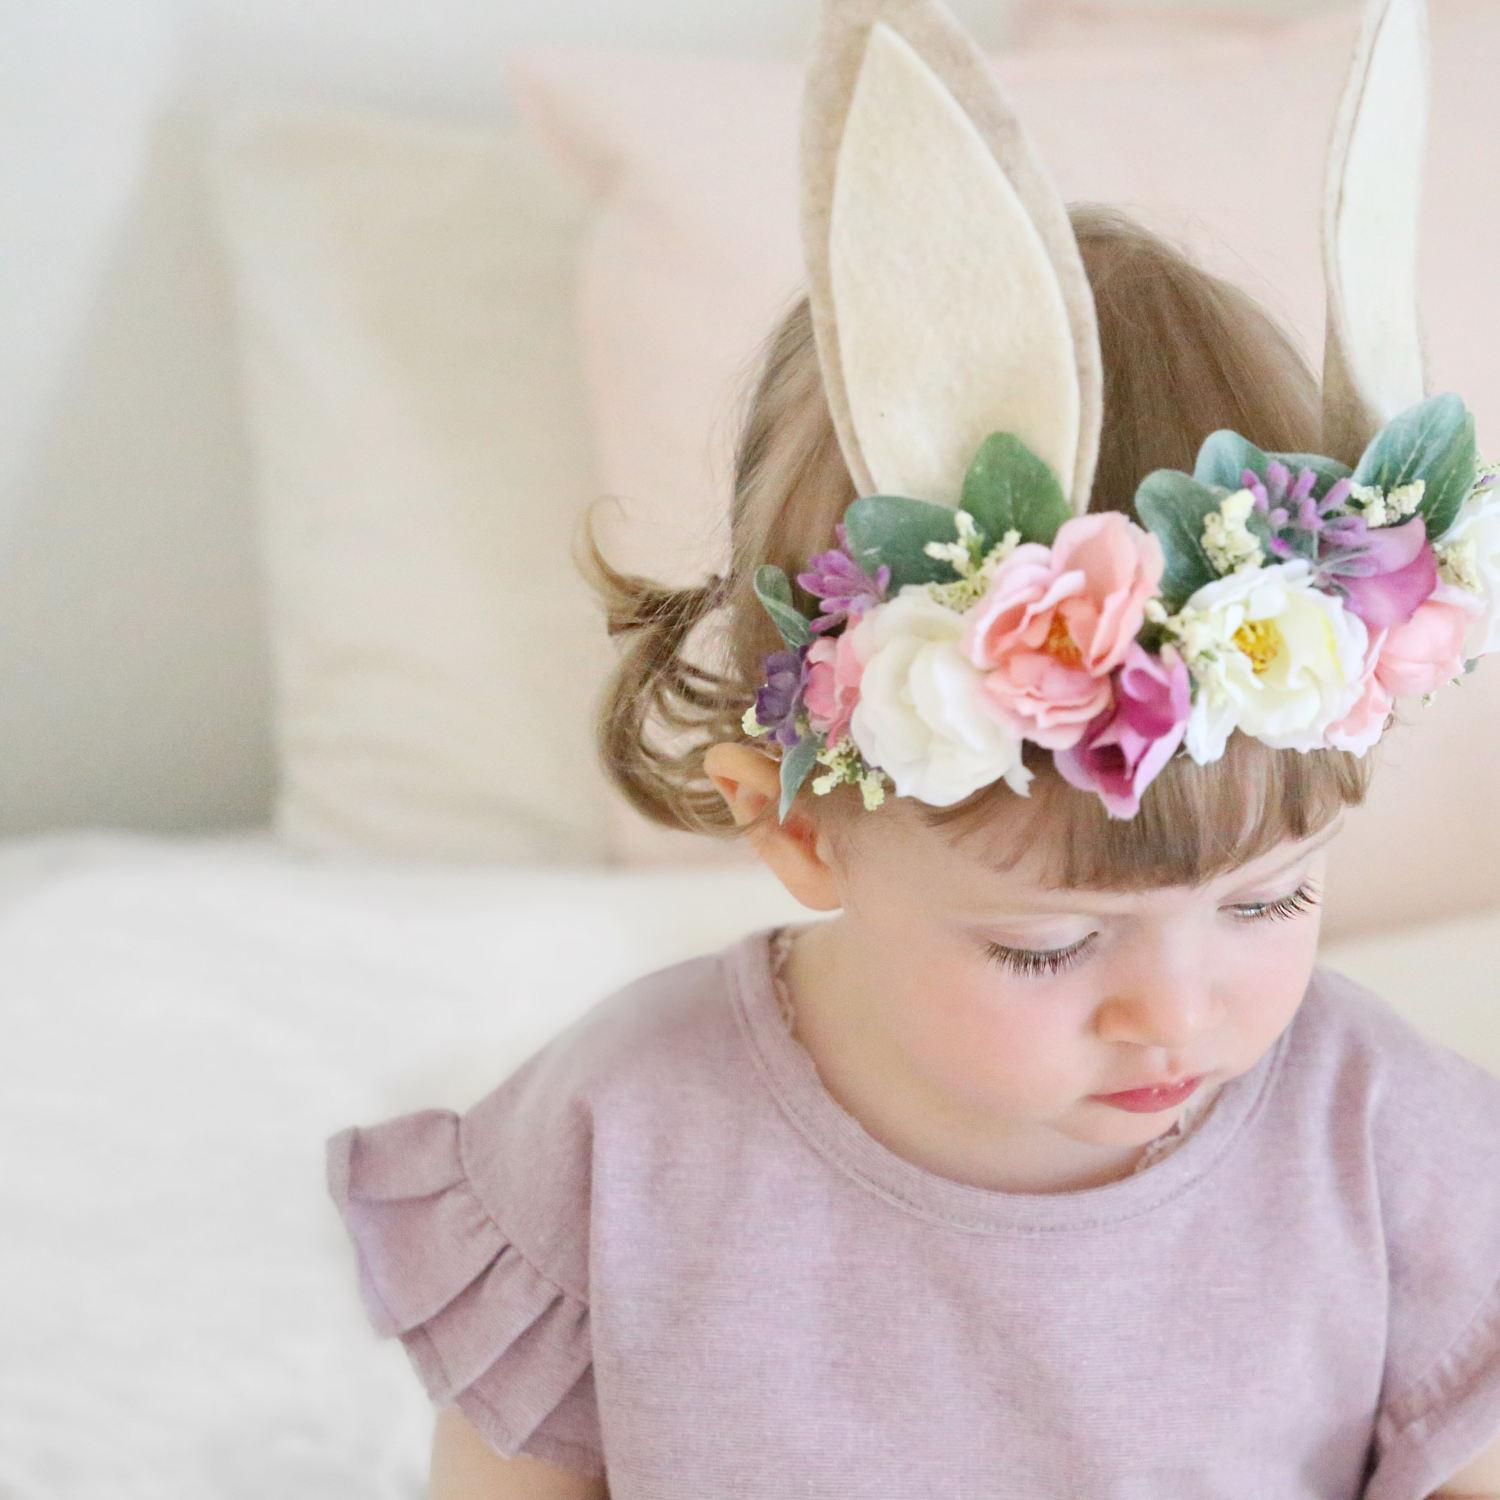 Baby Bunny Flower Crown Artificial Flower Rabbit Ears Headbands Cute